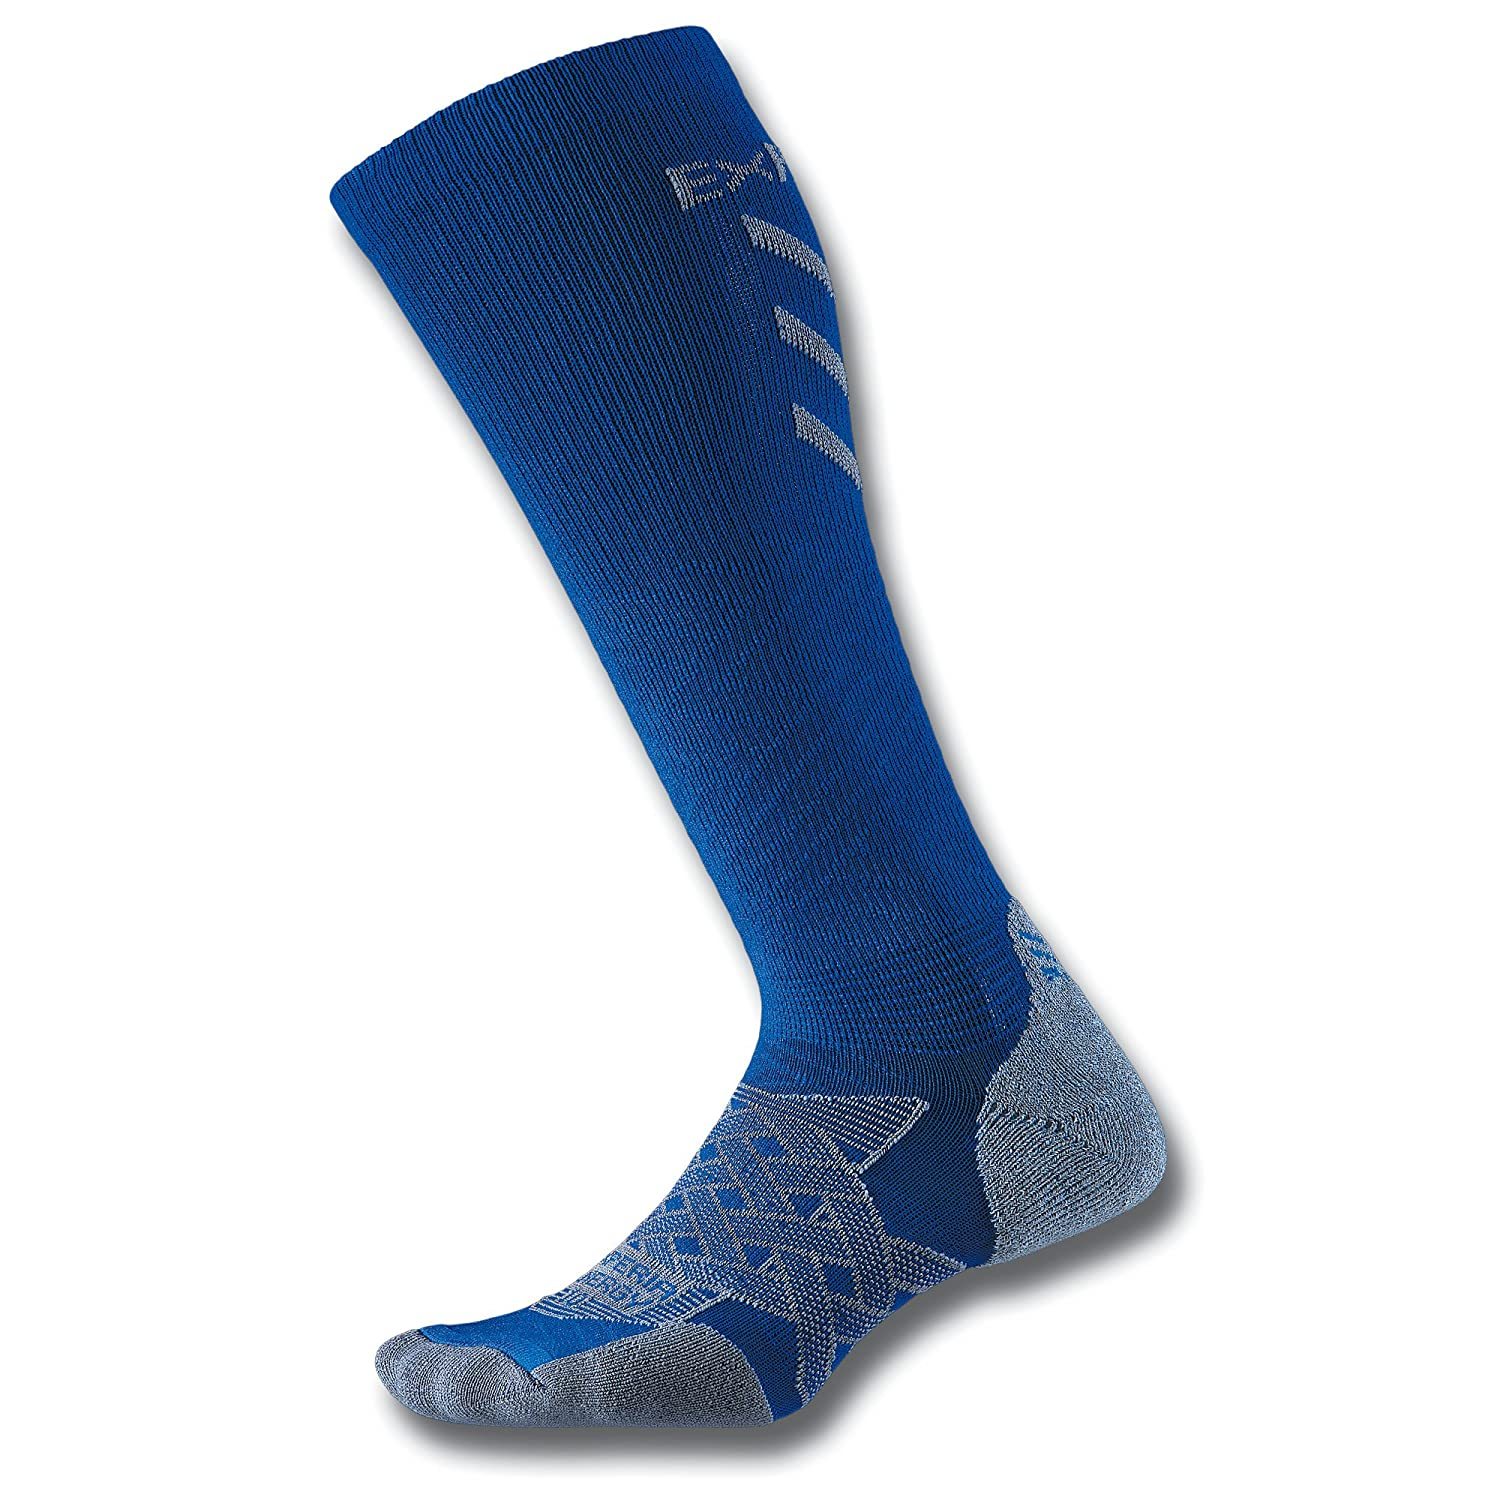 Thorlo Experia Energy Compression Over The Calf Chaussettes Mixte